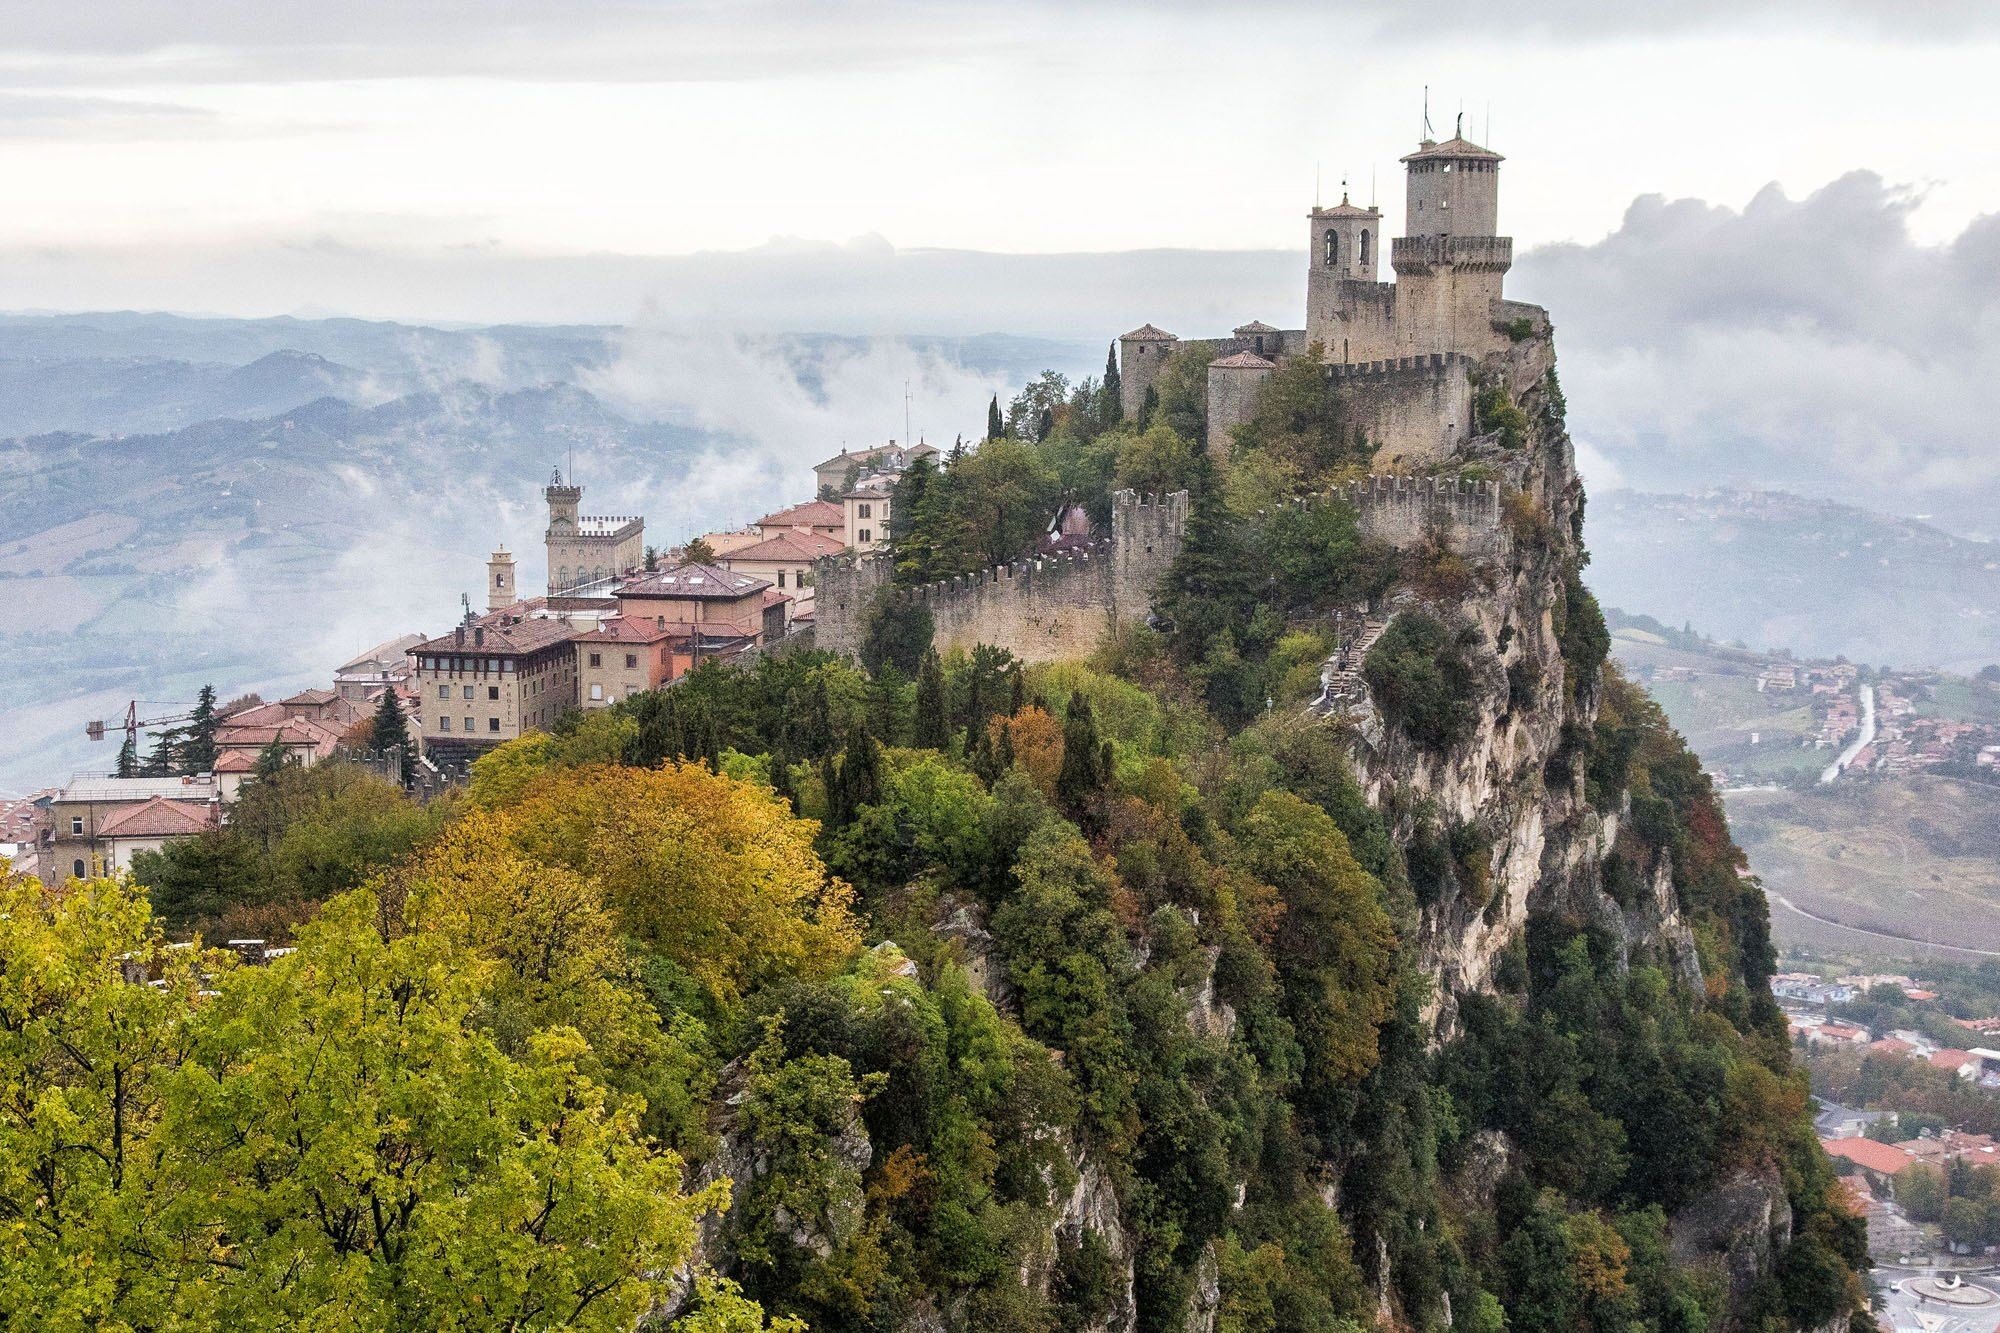 San Marino castles the view on the hill top fortress old monastery in clouds